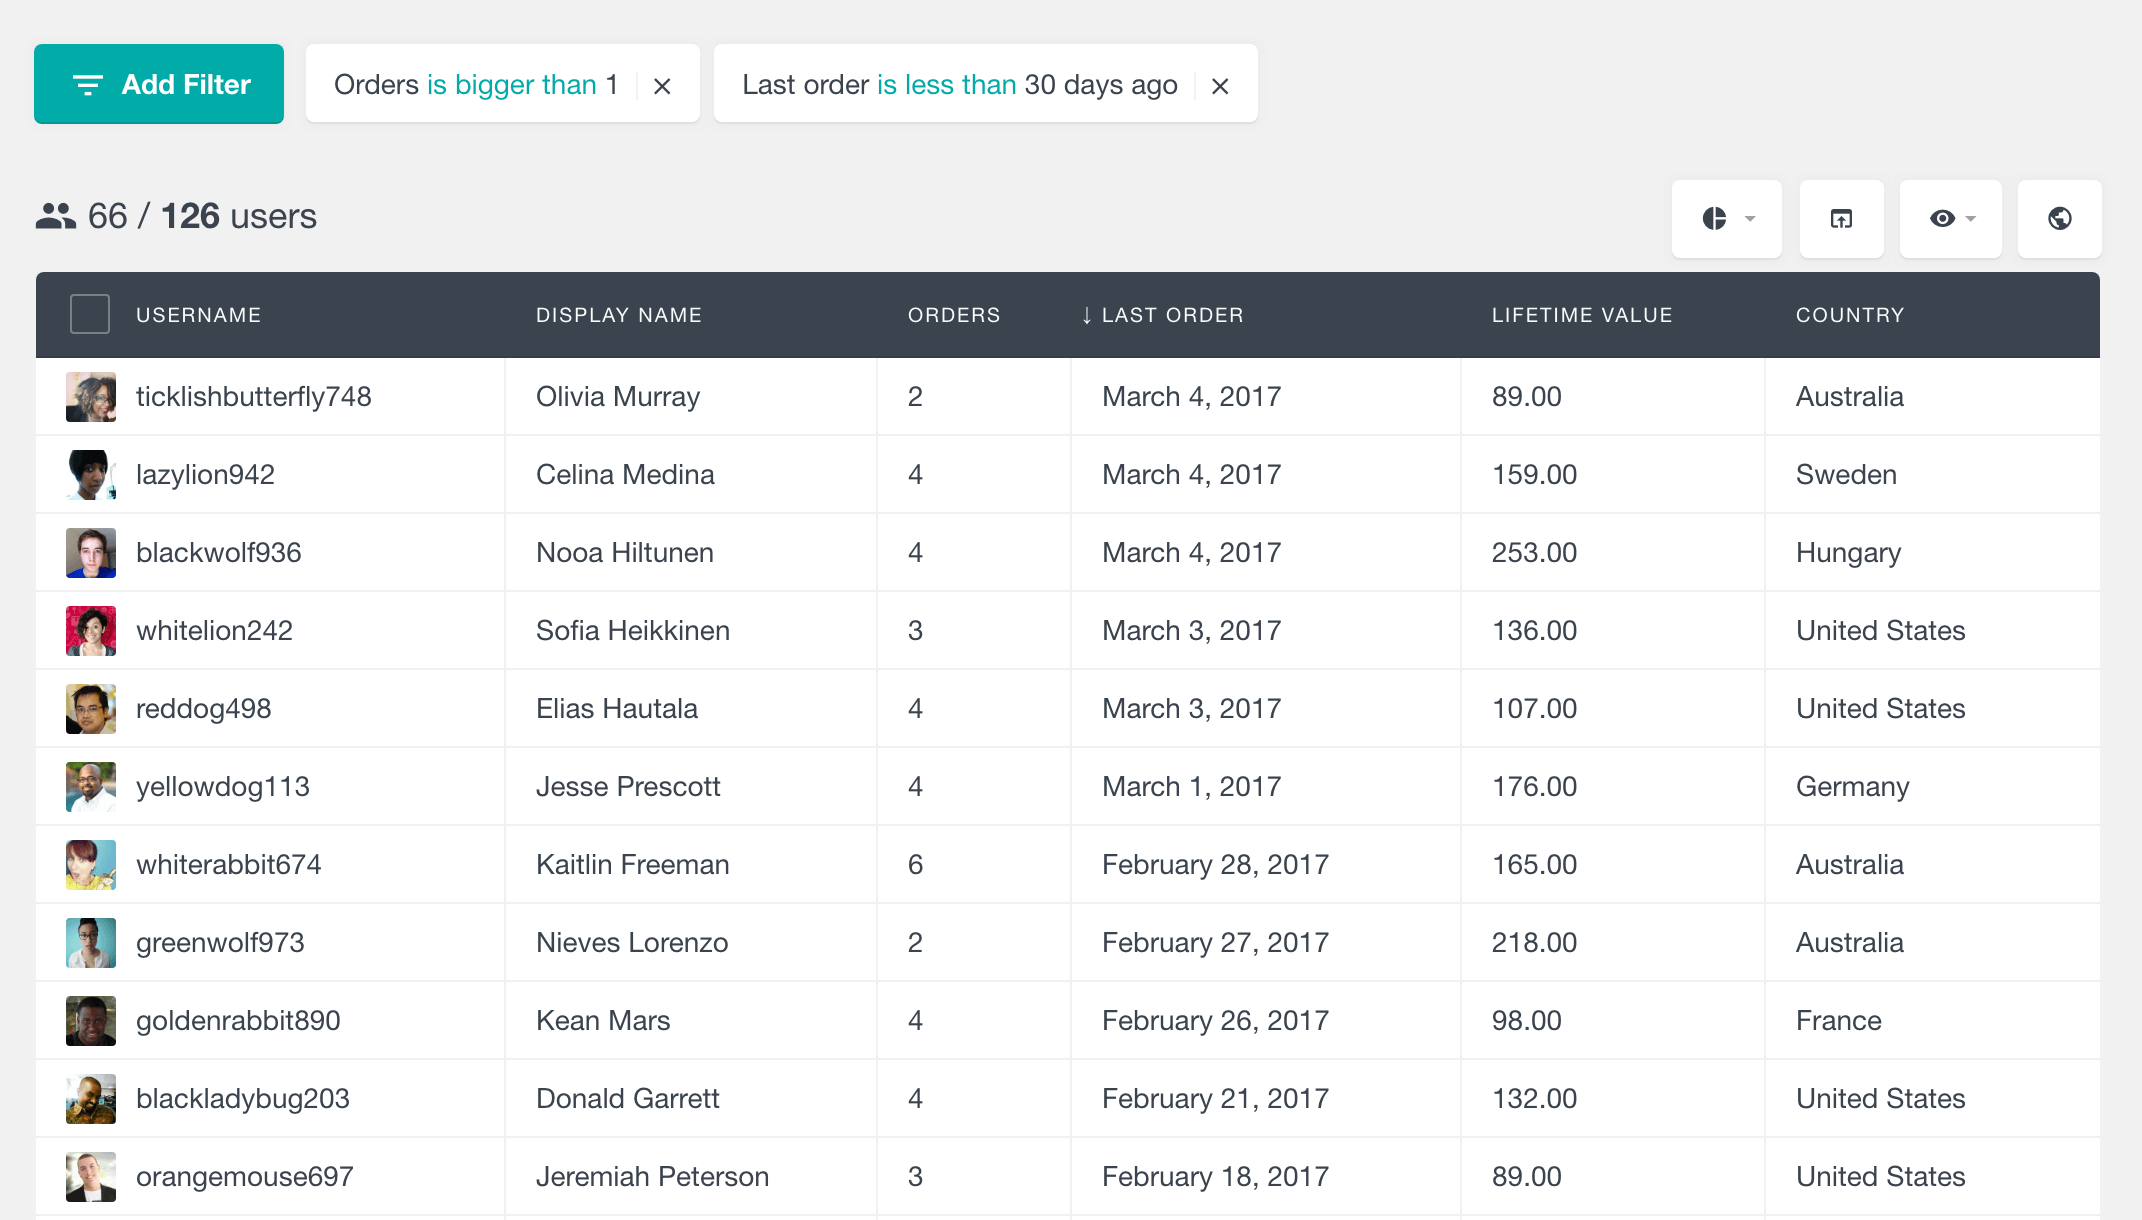 Find Repeat WooCommerce customers in the last 30 days